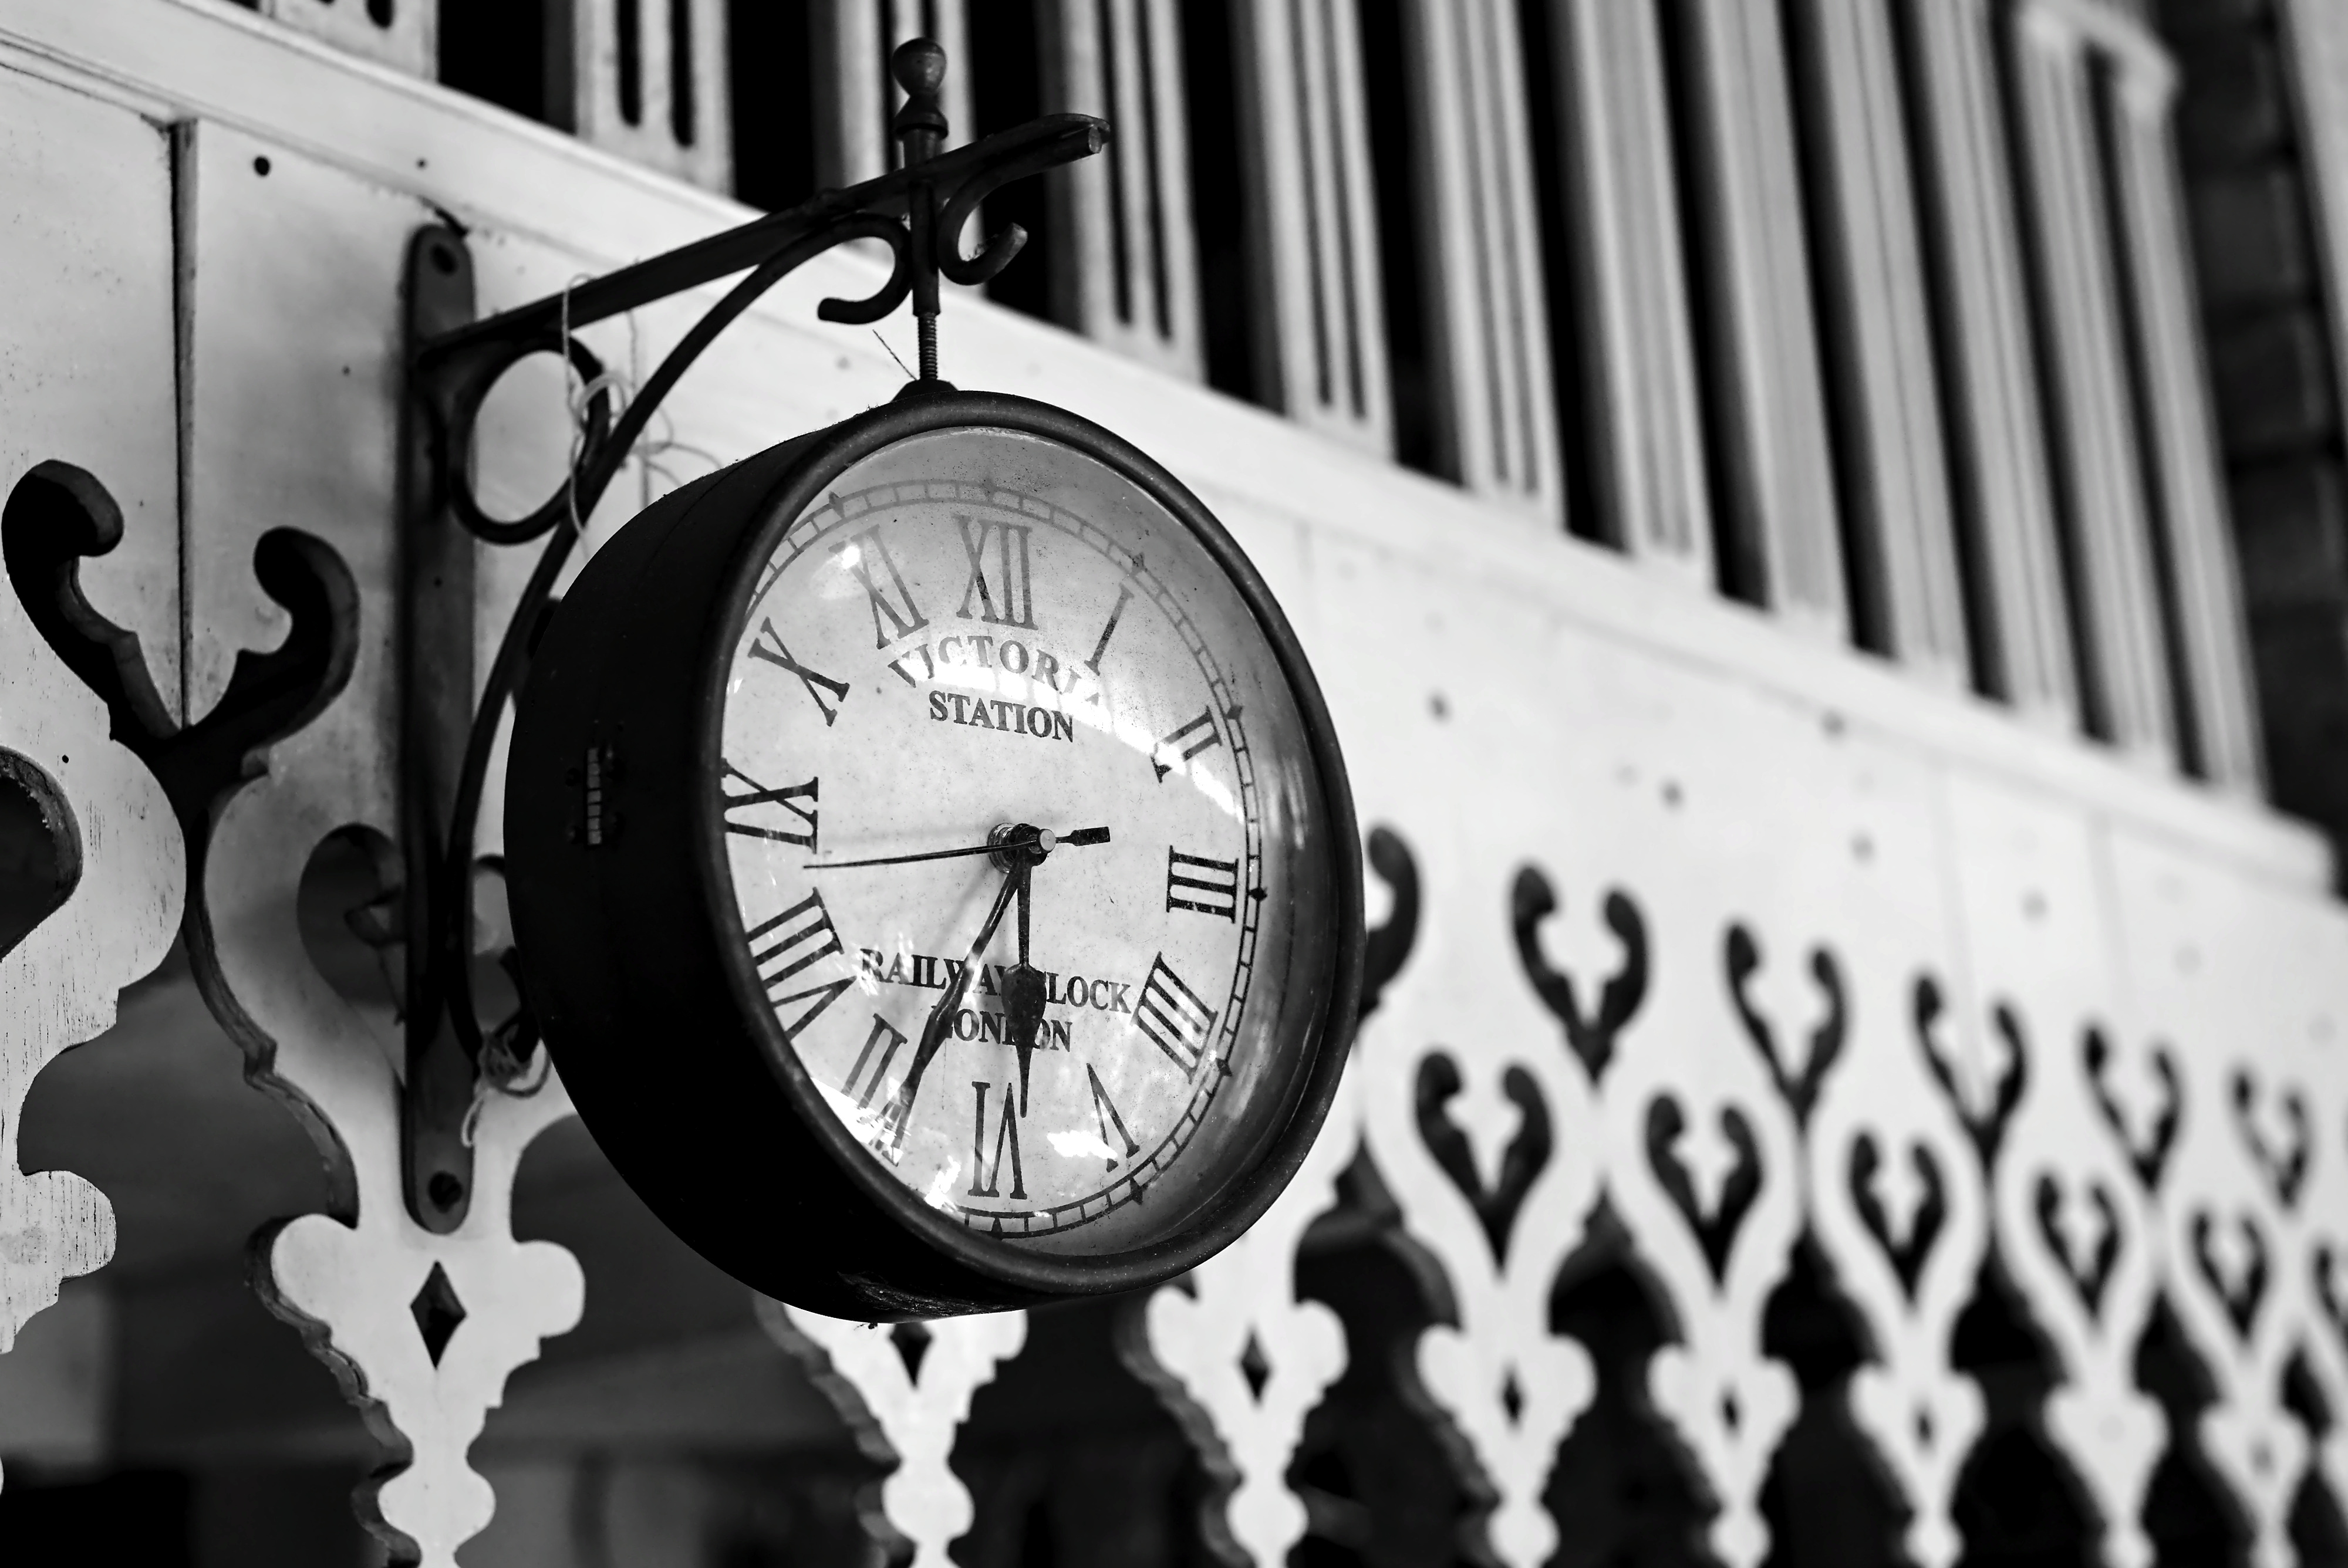 time does stand still sometimes